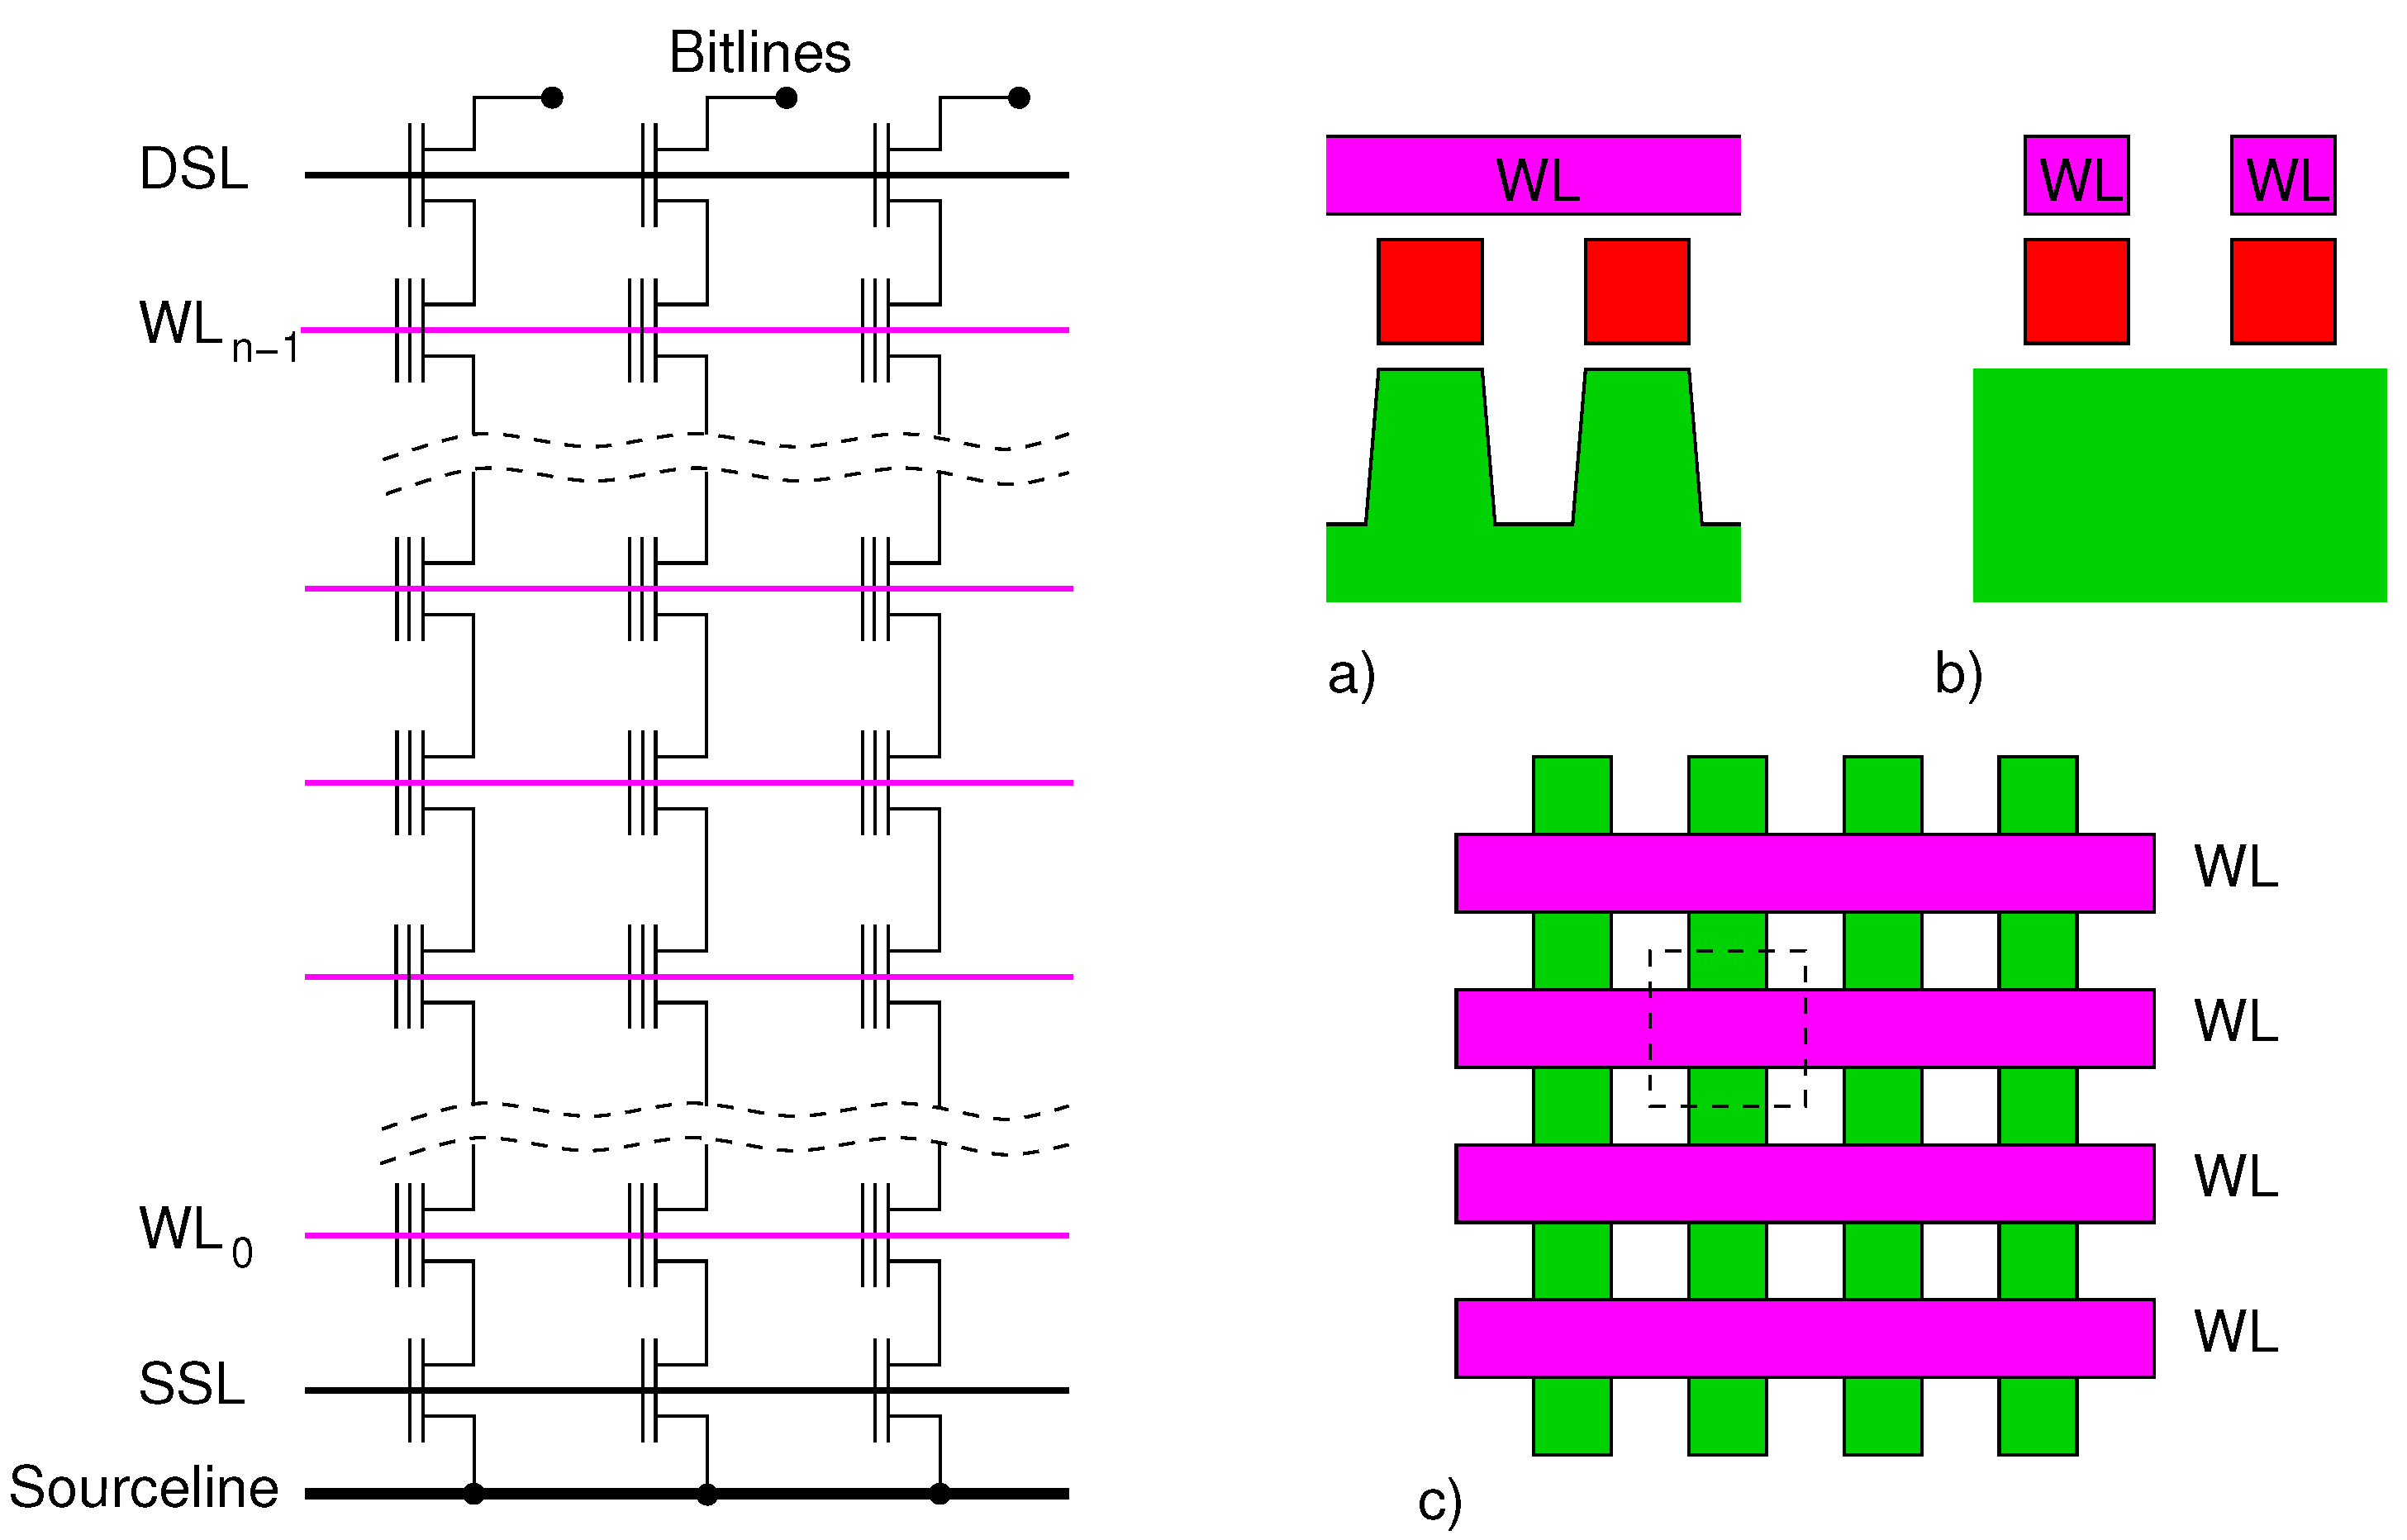 computers-06-00016-g001 Nand Gate Schematic on